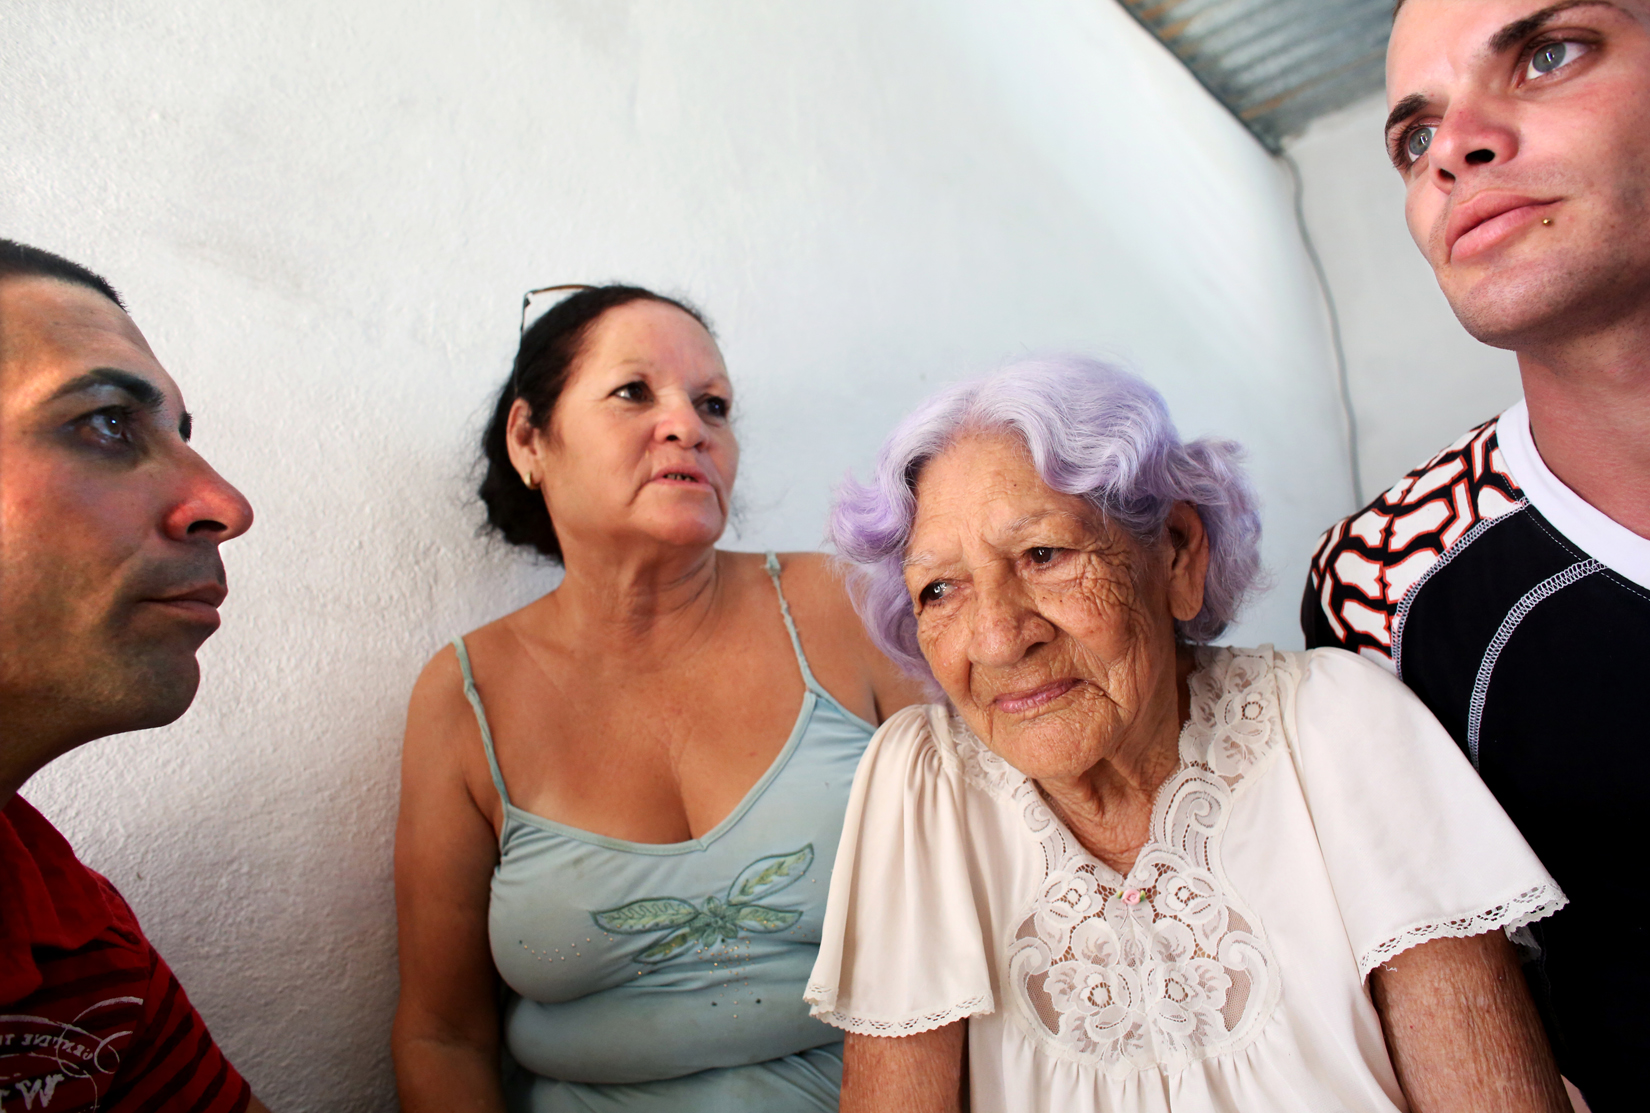 (L-R) Michael Denis Fonteto, his mother, Raizel Fonte Muñoz, grandmother Aida Muñoz, and brother, Yasiel Valdivia, spend time together in a village close to the port city of Mariel, Cuba. Yasiel and Michael's uncle was amongst those who fled toward Florida in the Mariel Boatlift exodus of 1980. The brothers say he has not since regained permission to return, separating him from his sister (their mother) and his 93-year-old mother, for 35 years. Mariel is a town whose tranquil appearance belies its important place in both the history and future of Cuban-American interaction. It is where Russians unloaded nuclear warheads in the 1962 Cuban missile crisis, and the gateway through which 125,000 Miami-bound emigres fled during the Mariel Boatlift of 1980. The town is now the site of construction of a deepwater container port and a free-trade zone, a critical ingredient for which will be the future of the U.S. embargo against Cuba, in place for more than 50 years but now under speculation of being lifted.